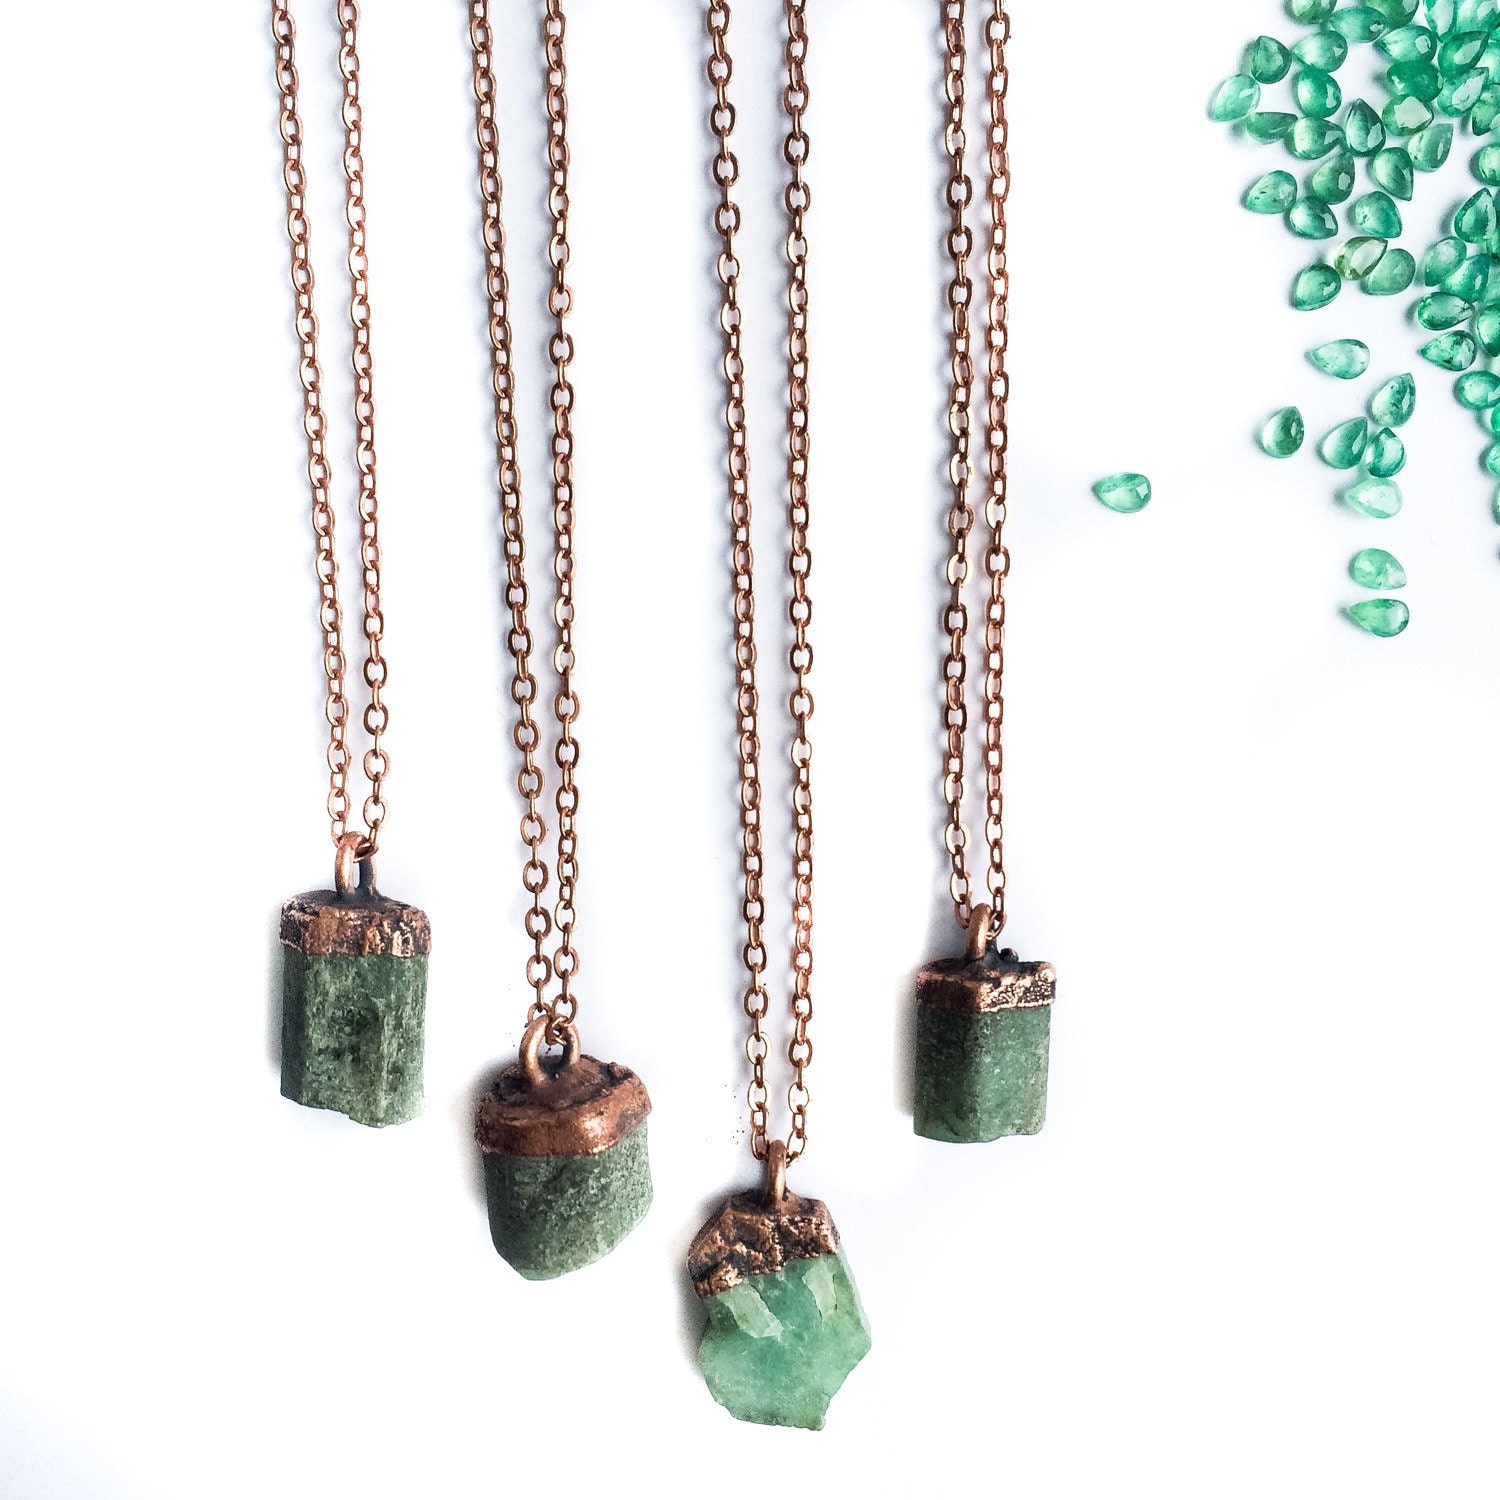 silver sterling necklace pendant crystals healing products emerald solid atperrys